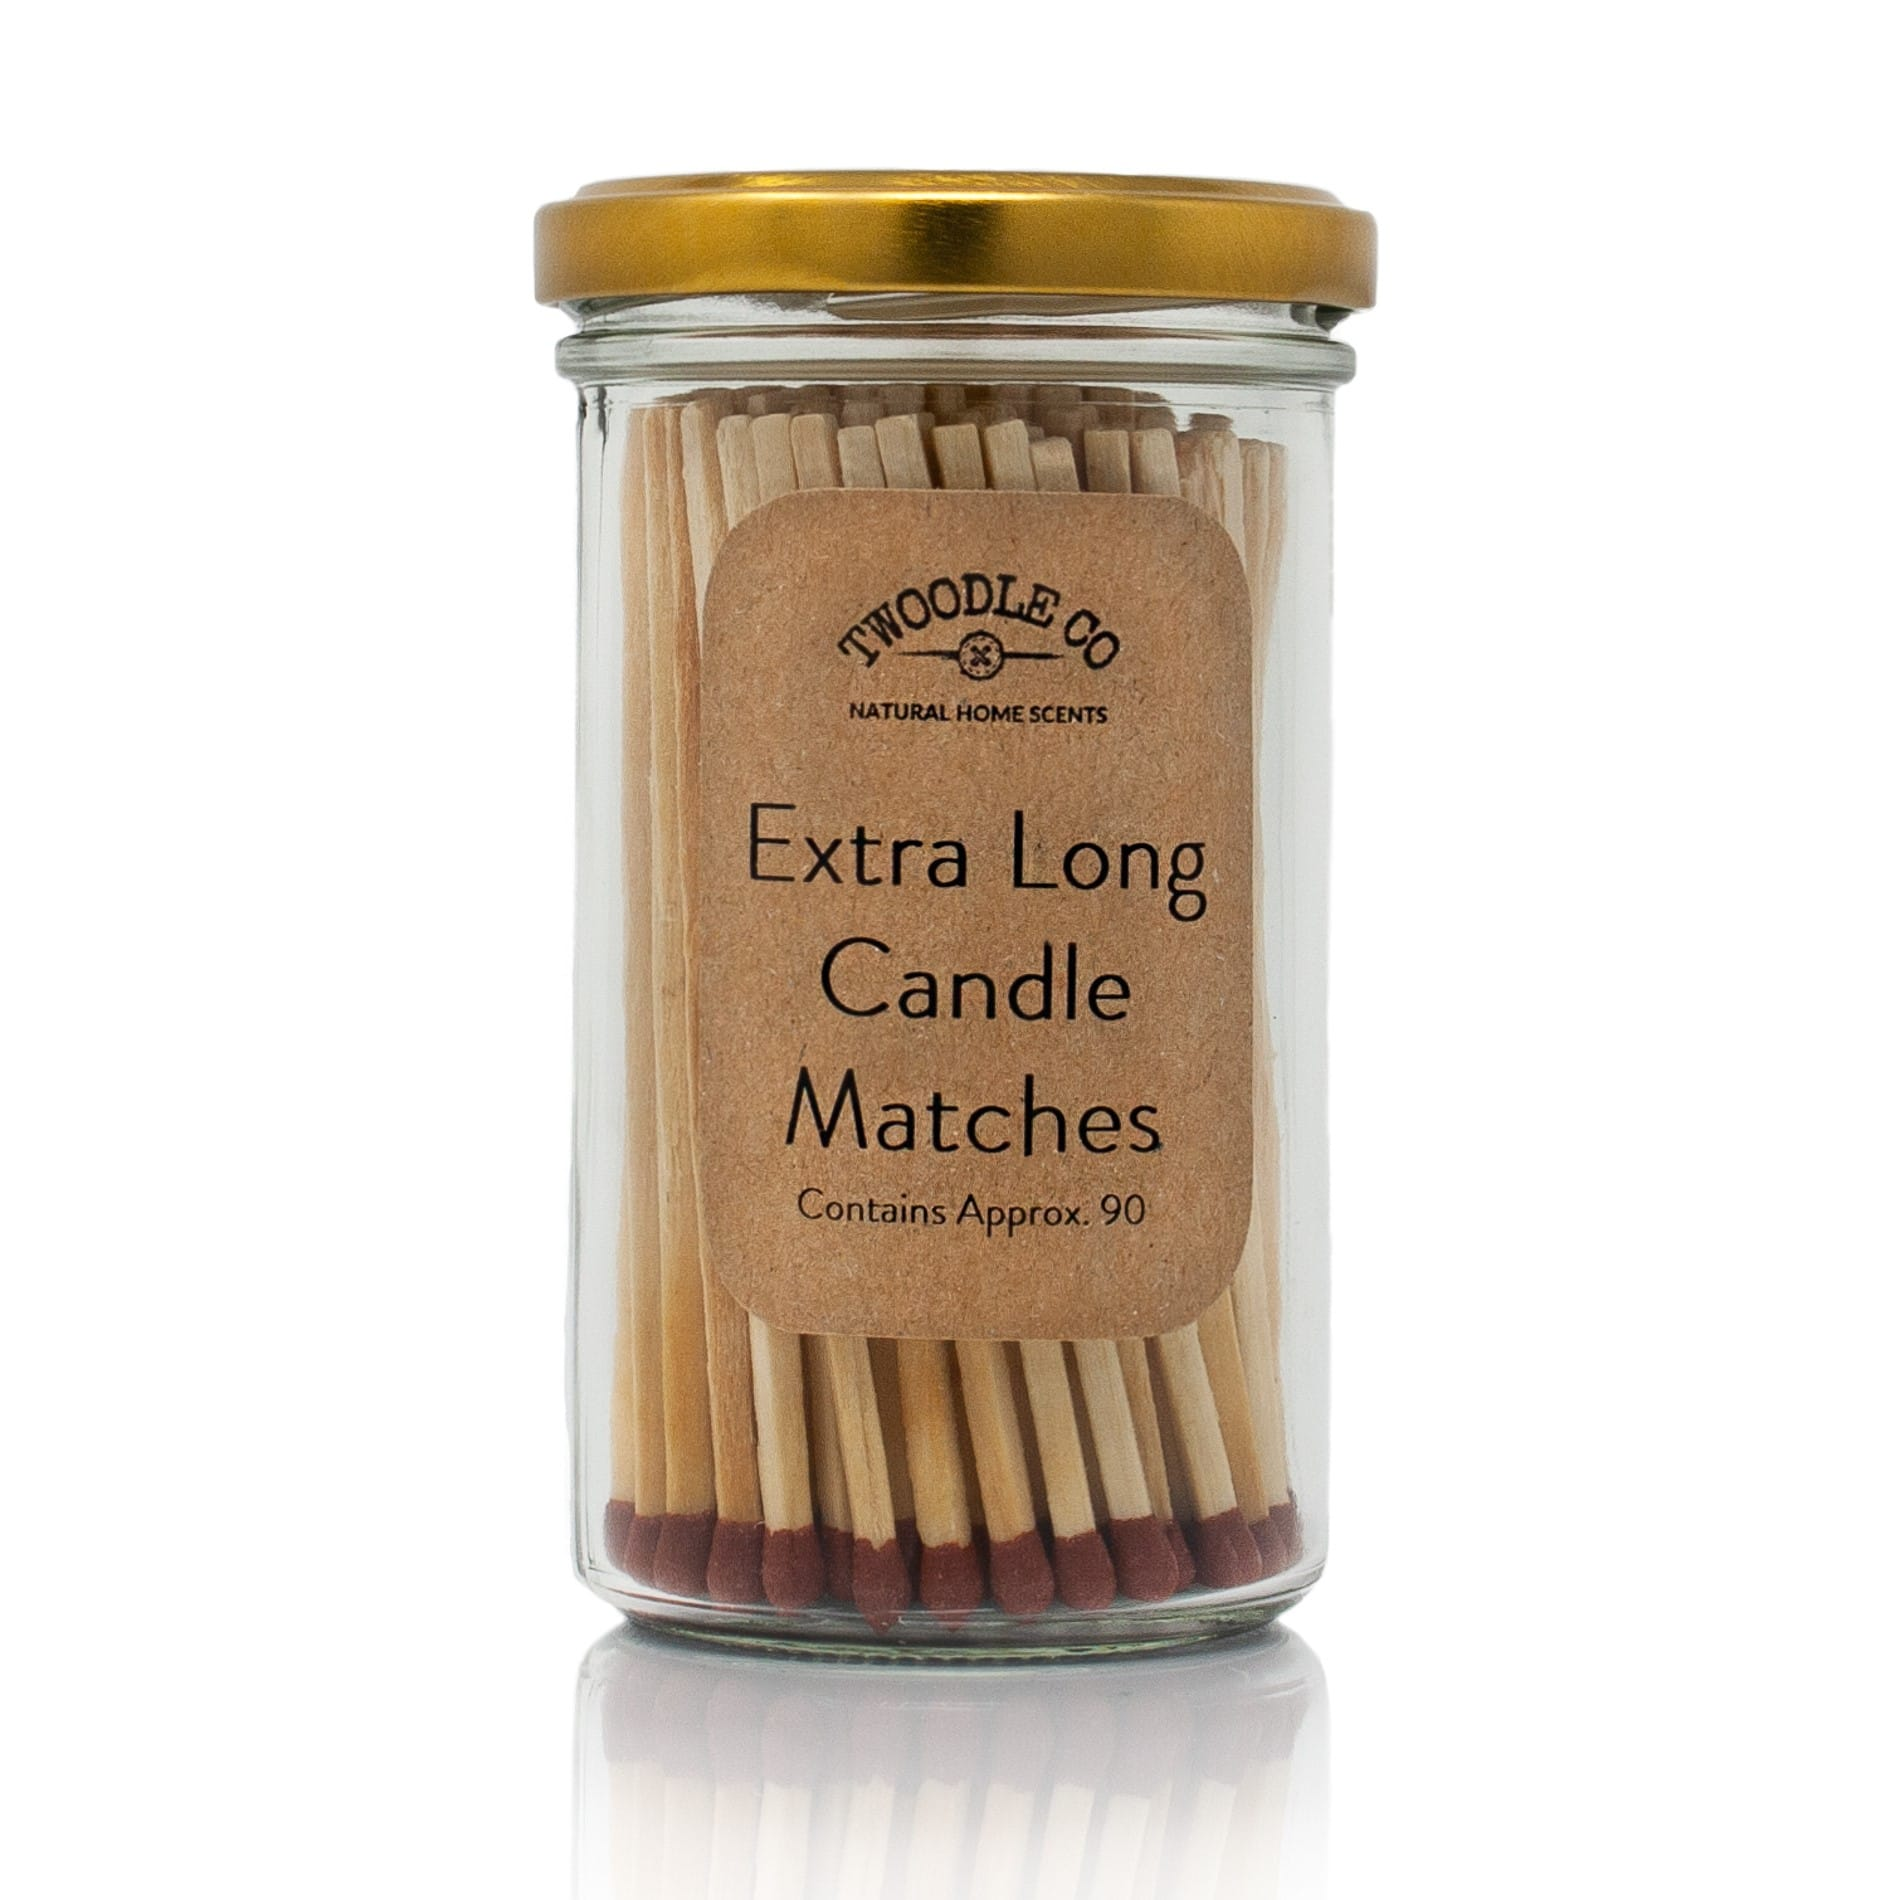 Extra long candle matches signature vintage jar and brass lid by Twoodle Co Natural Home Scents